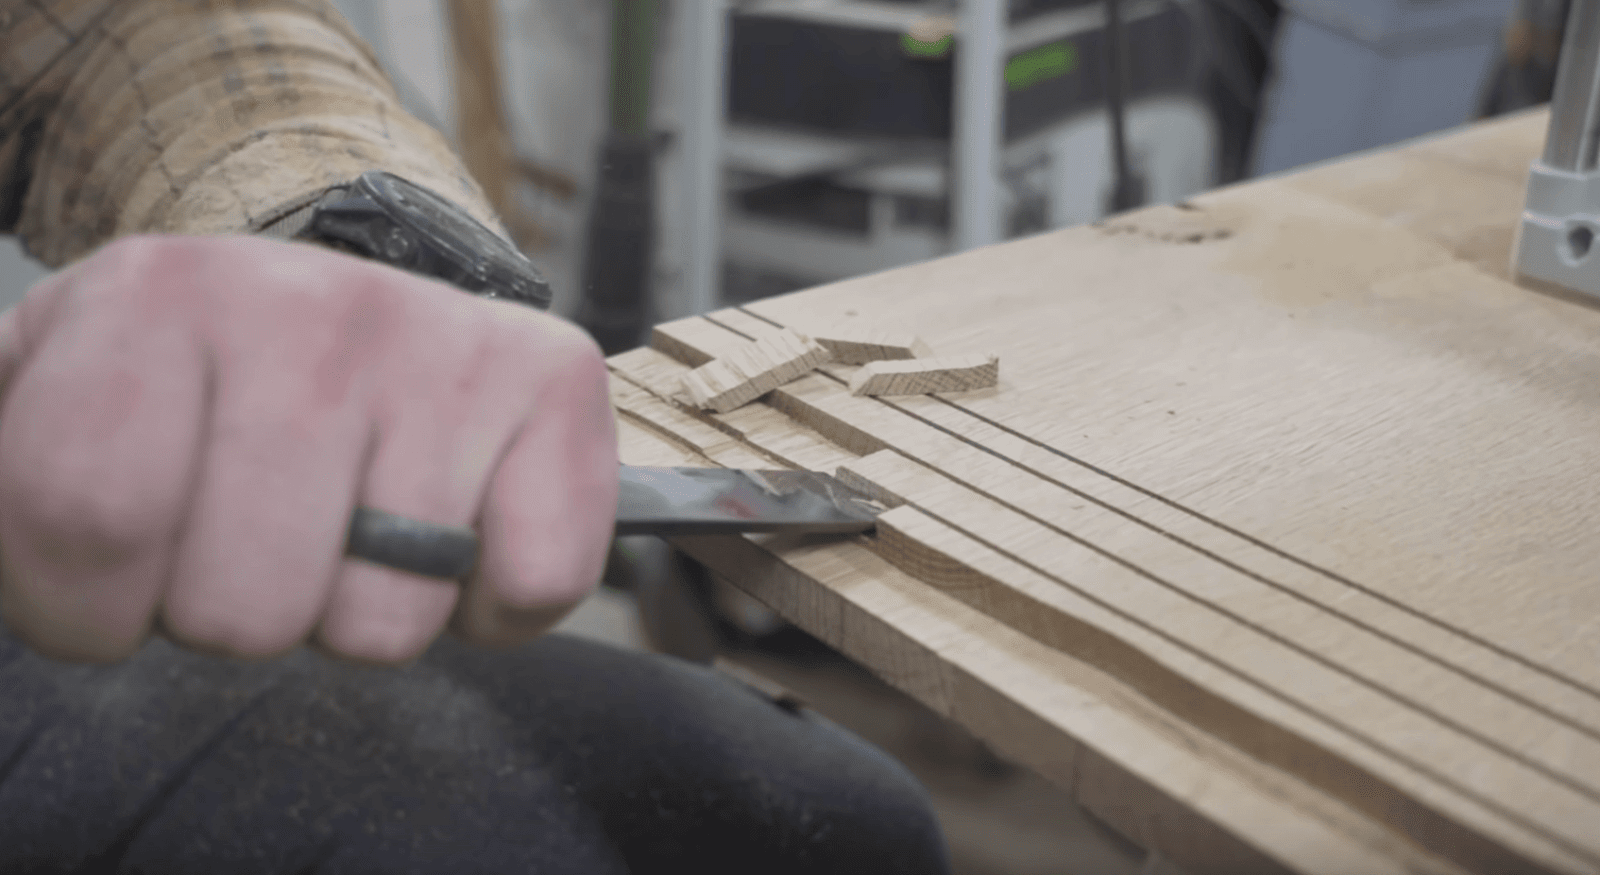 Creating breadboard ends